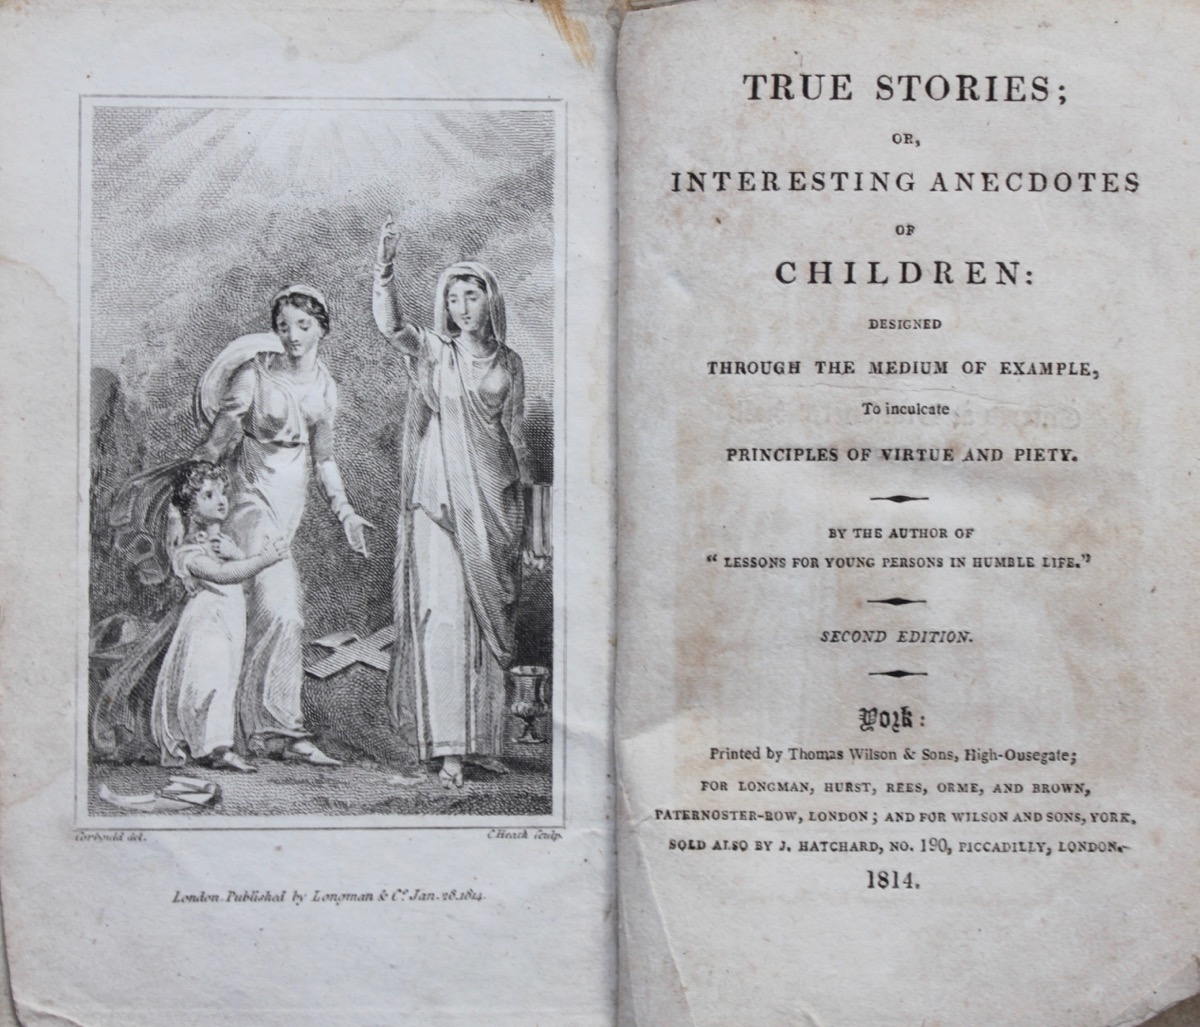 Image for True Stories; or, Interesting Anecdotes of Children: designed through the medium of example, to inculcate principles of virtue and piety.